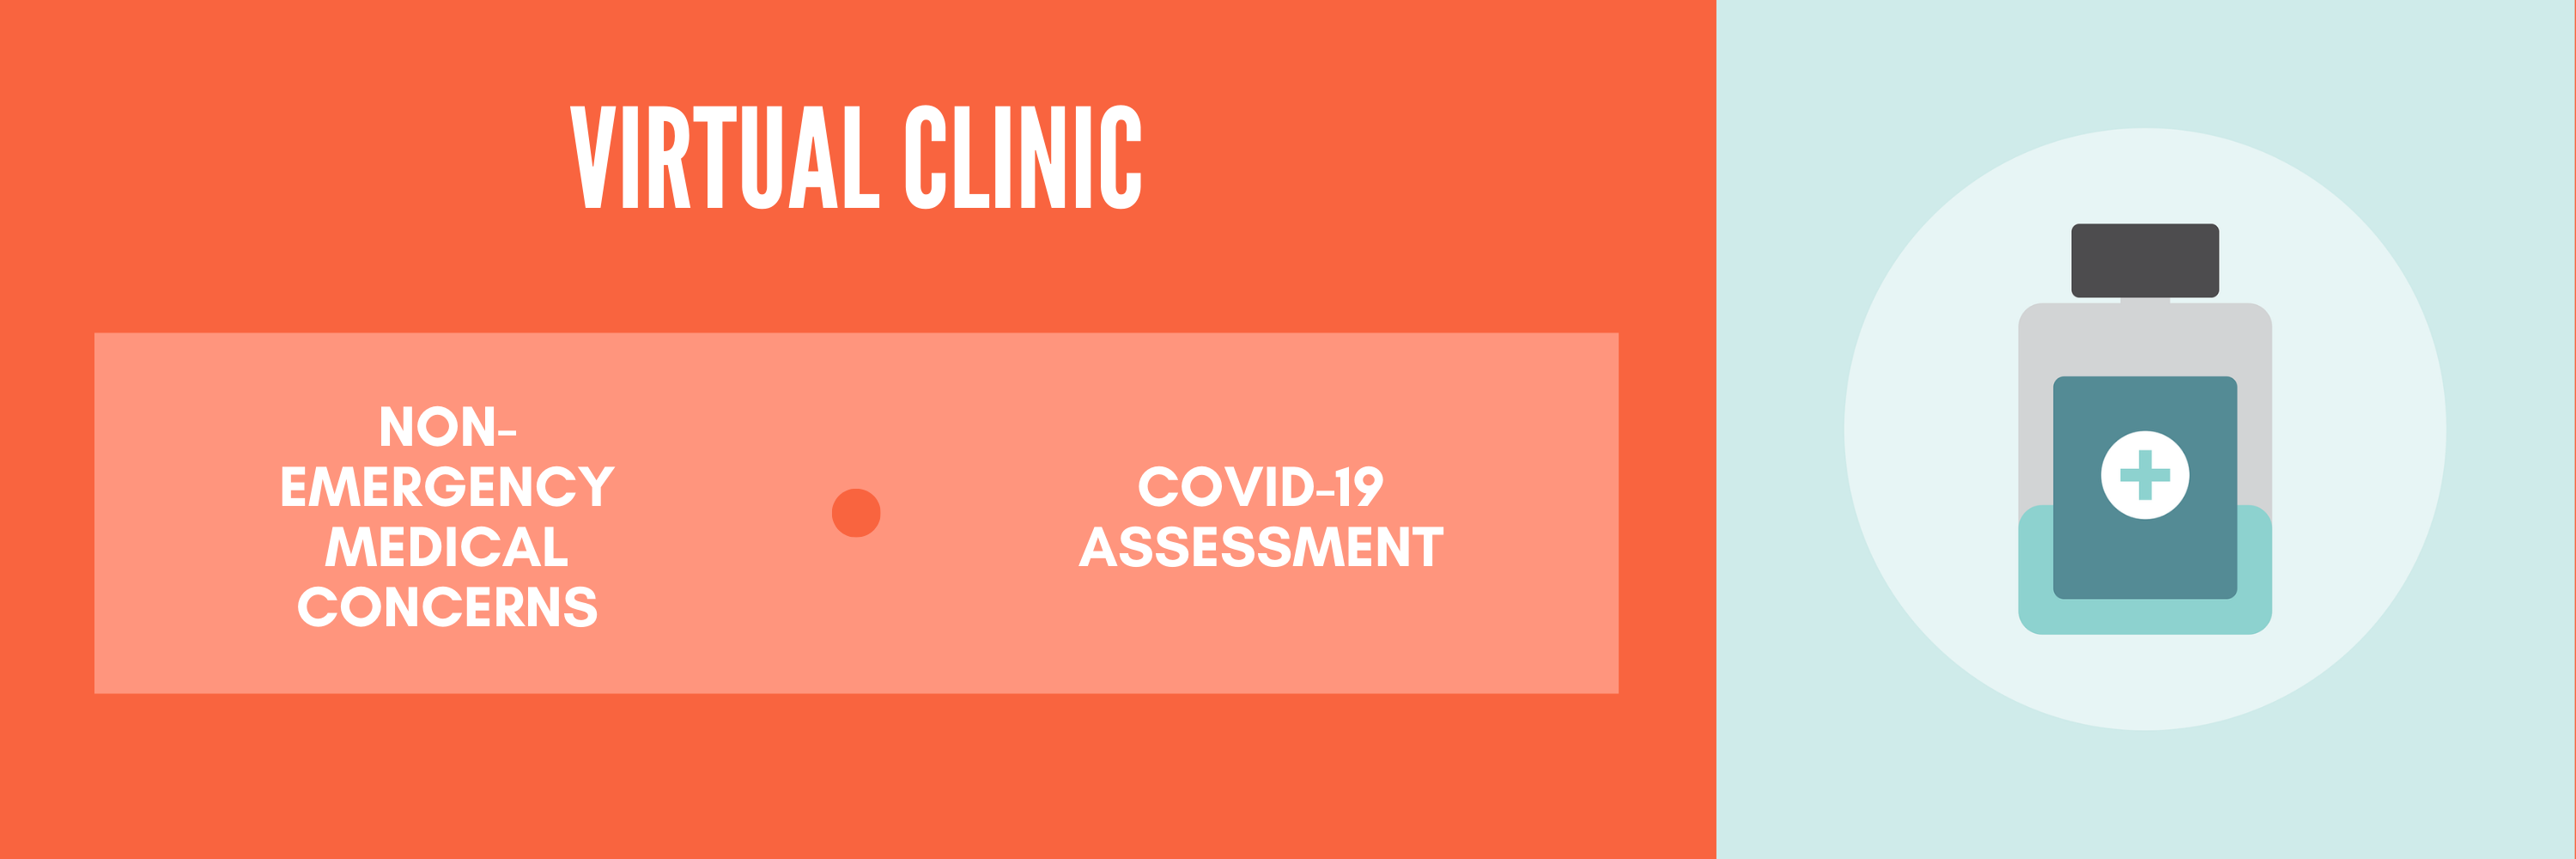 COVID-19 Virtual Clinic.png